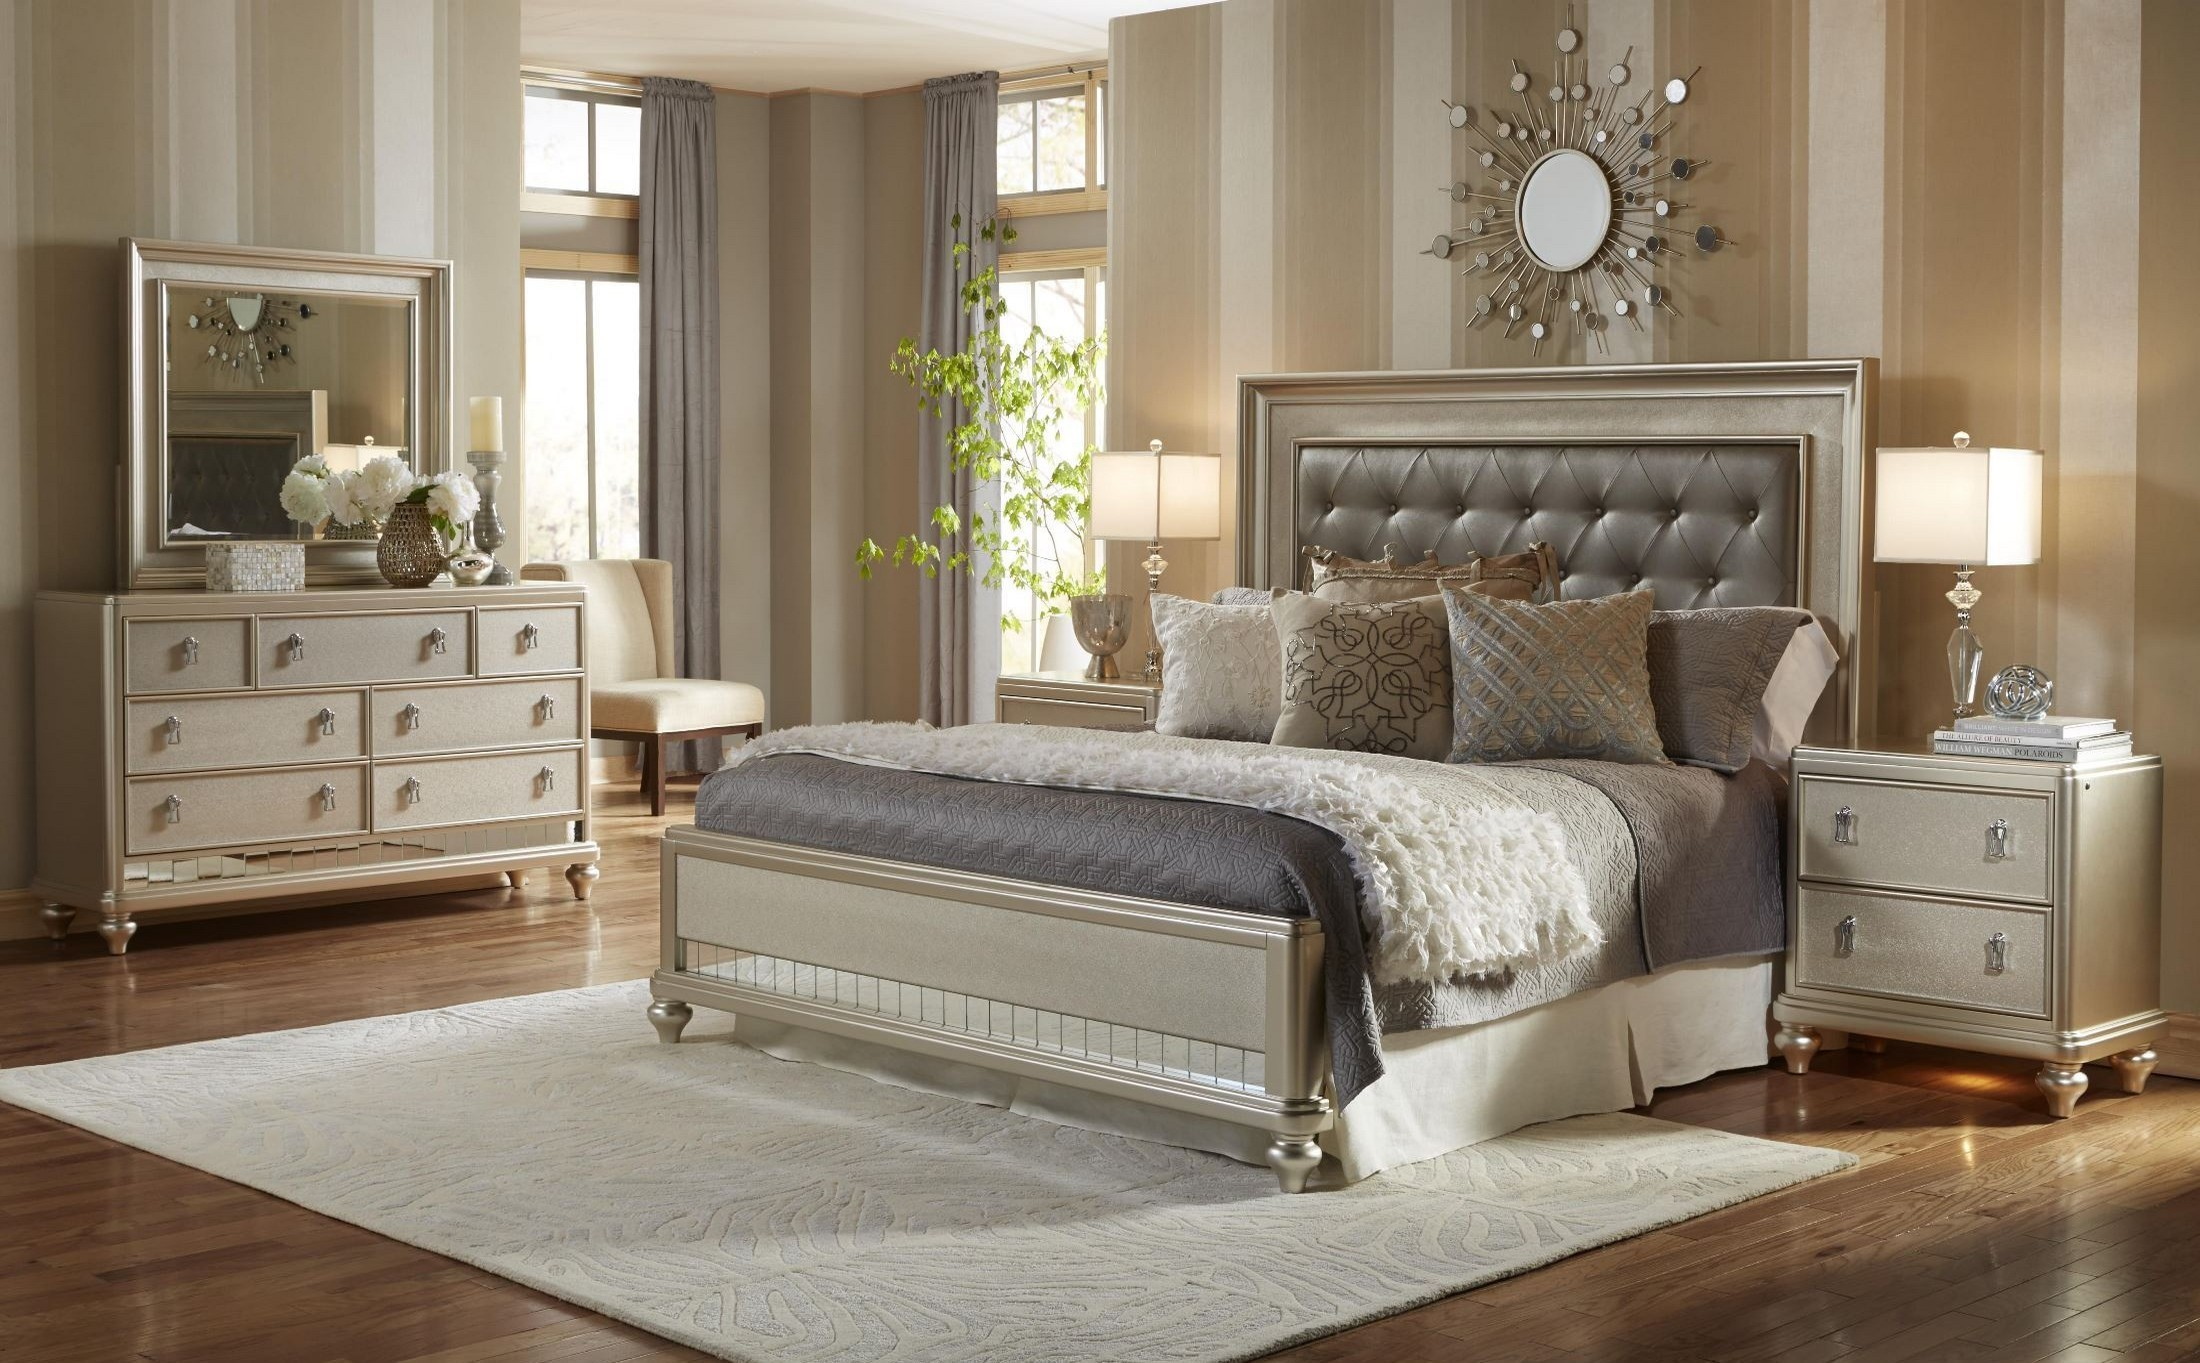 Diva panel bedroom set from samuel lawrence 8808 255 257 for Front room furniture sets